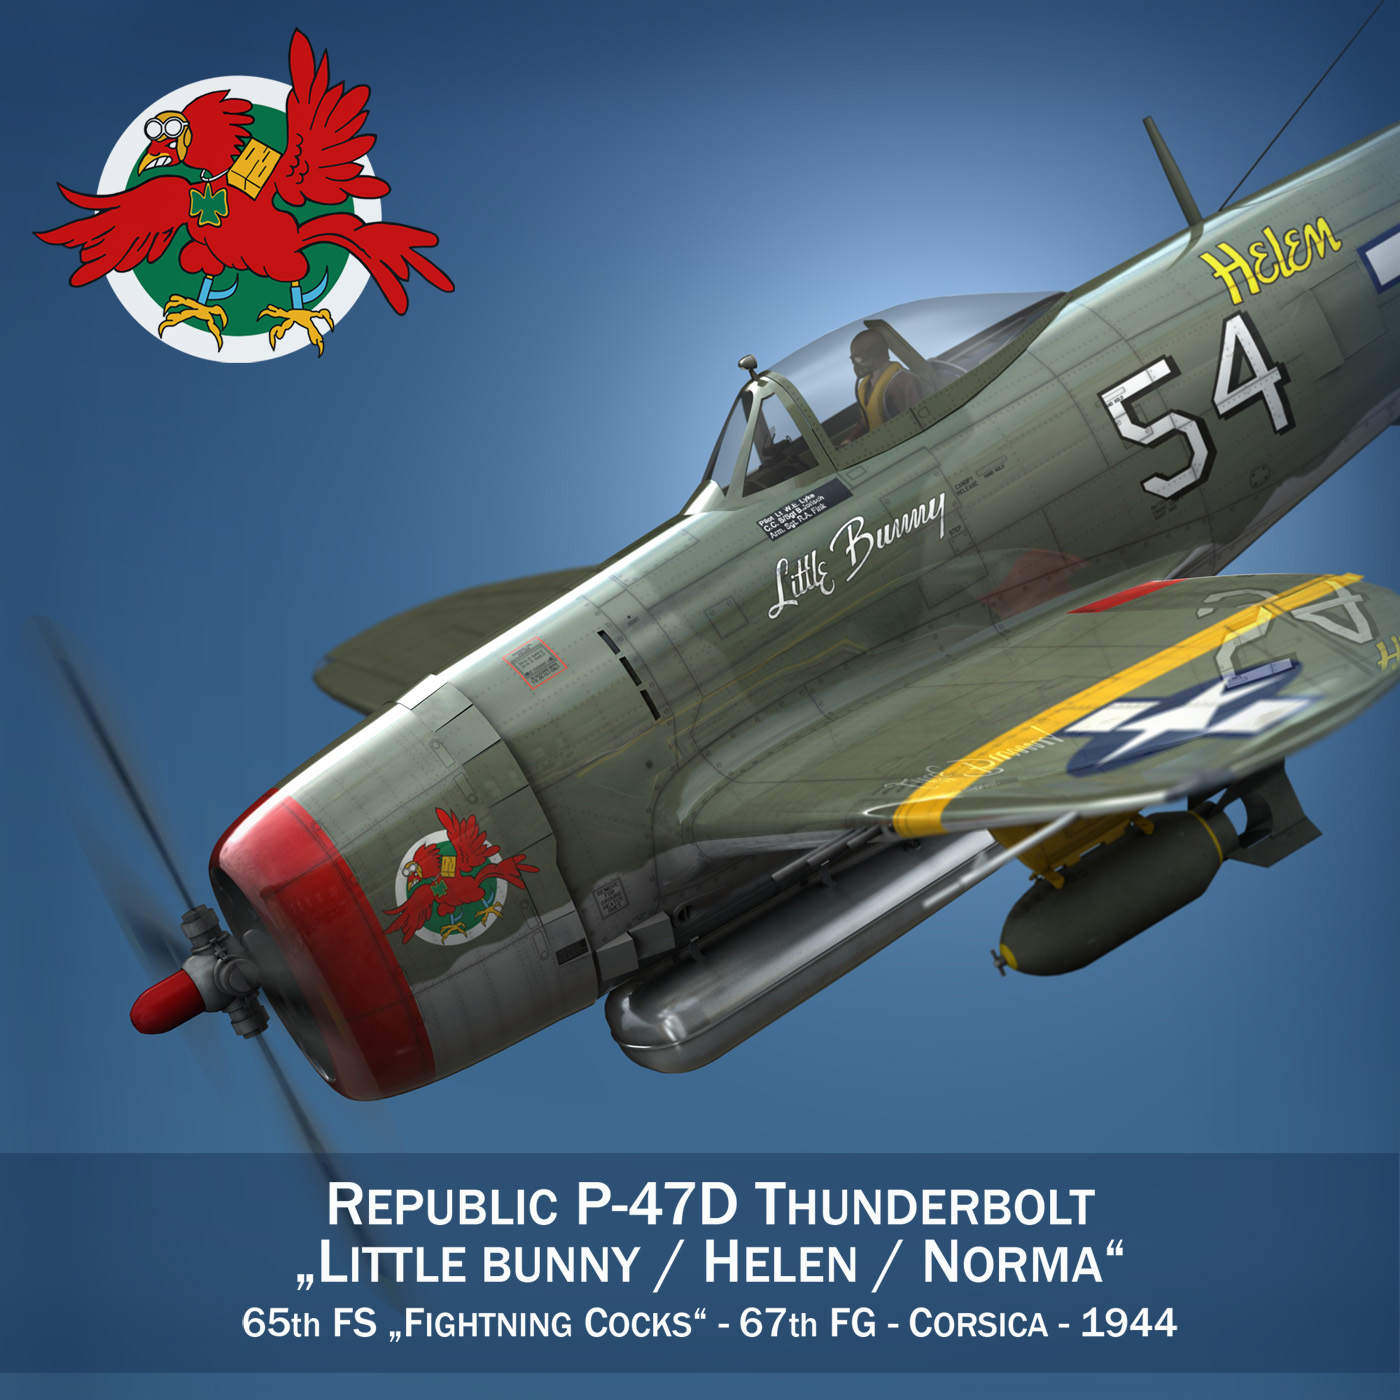 republic p-47d thunderbolt – little bunny 3d model fbx c4d lwo obj 274220